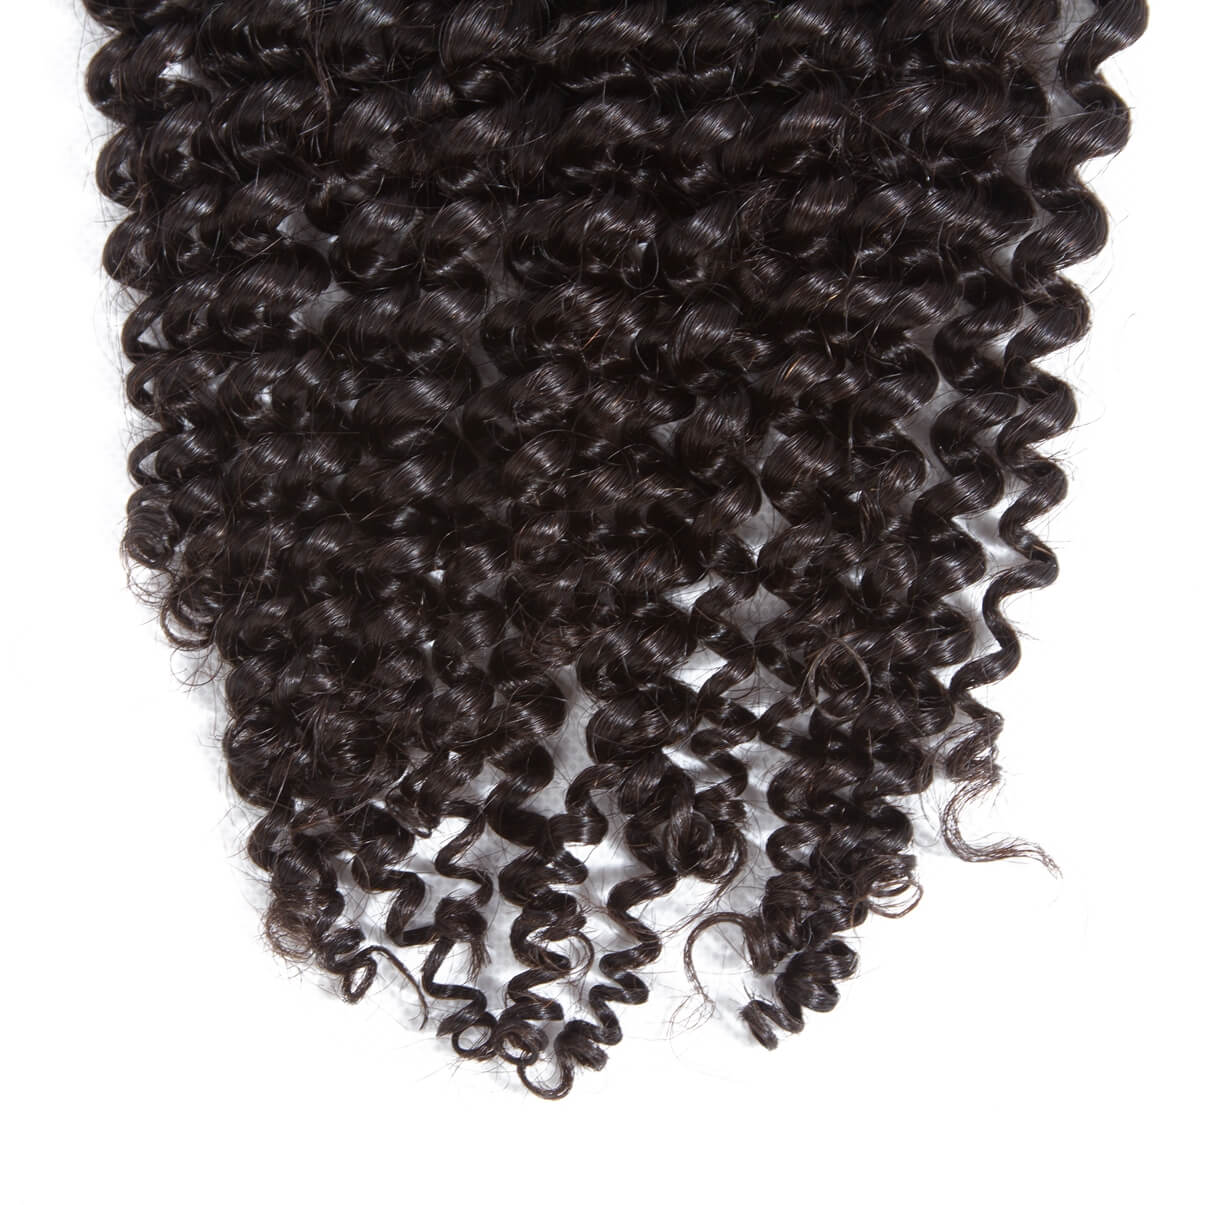 Lakihair 8A Brazilian Kinky Curly Hair Extensions 3 Bundles With Lace Closure 4x4